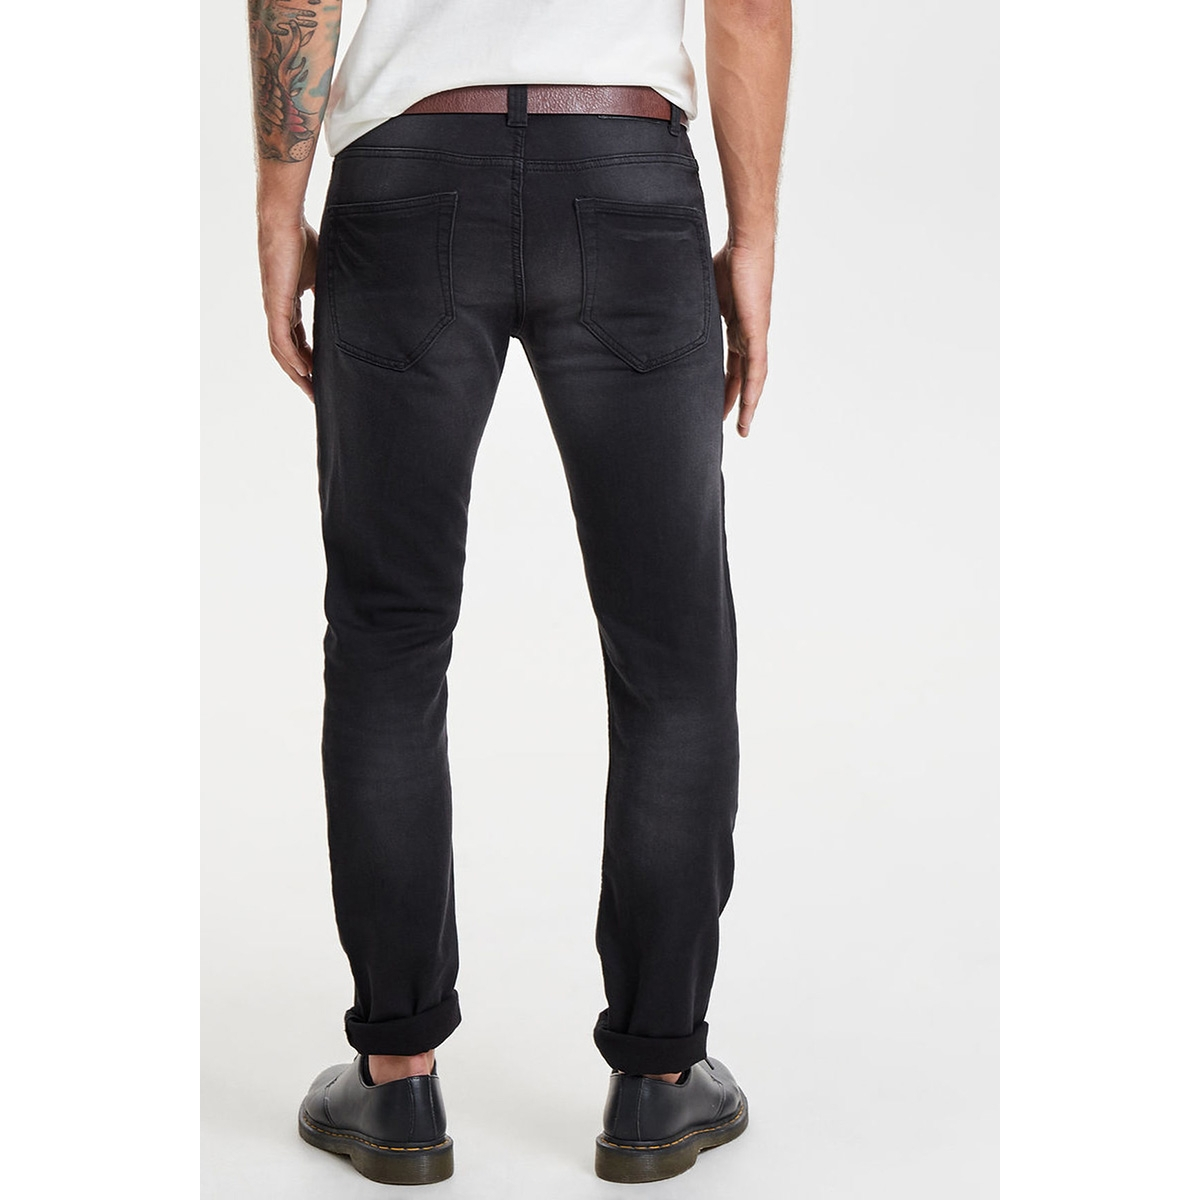 onsloom black jog 7451 pk noos 22007451 only & sons jeans black